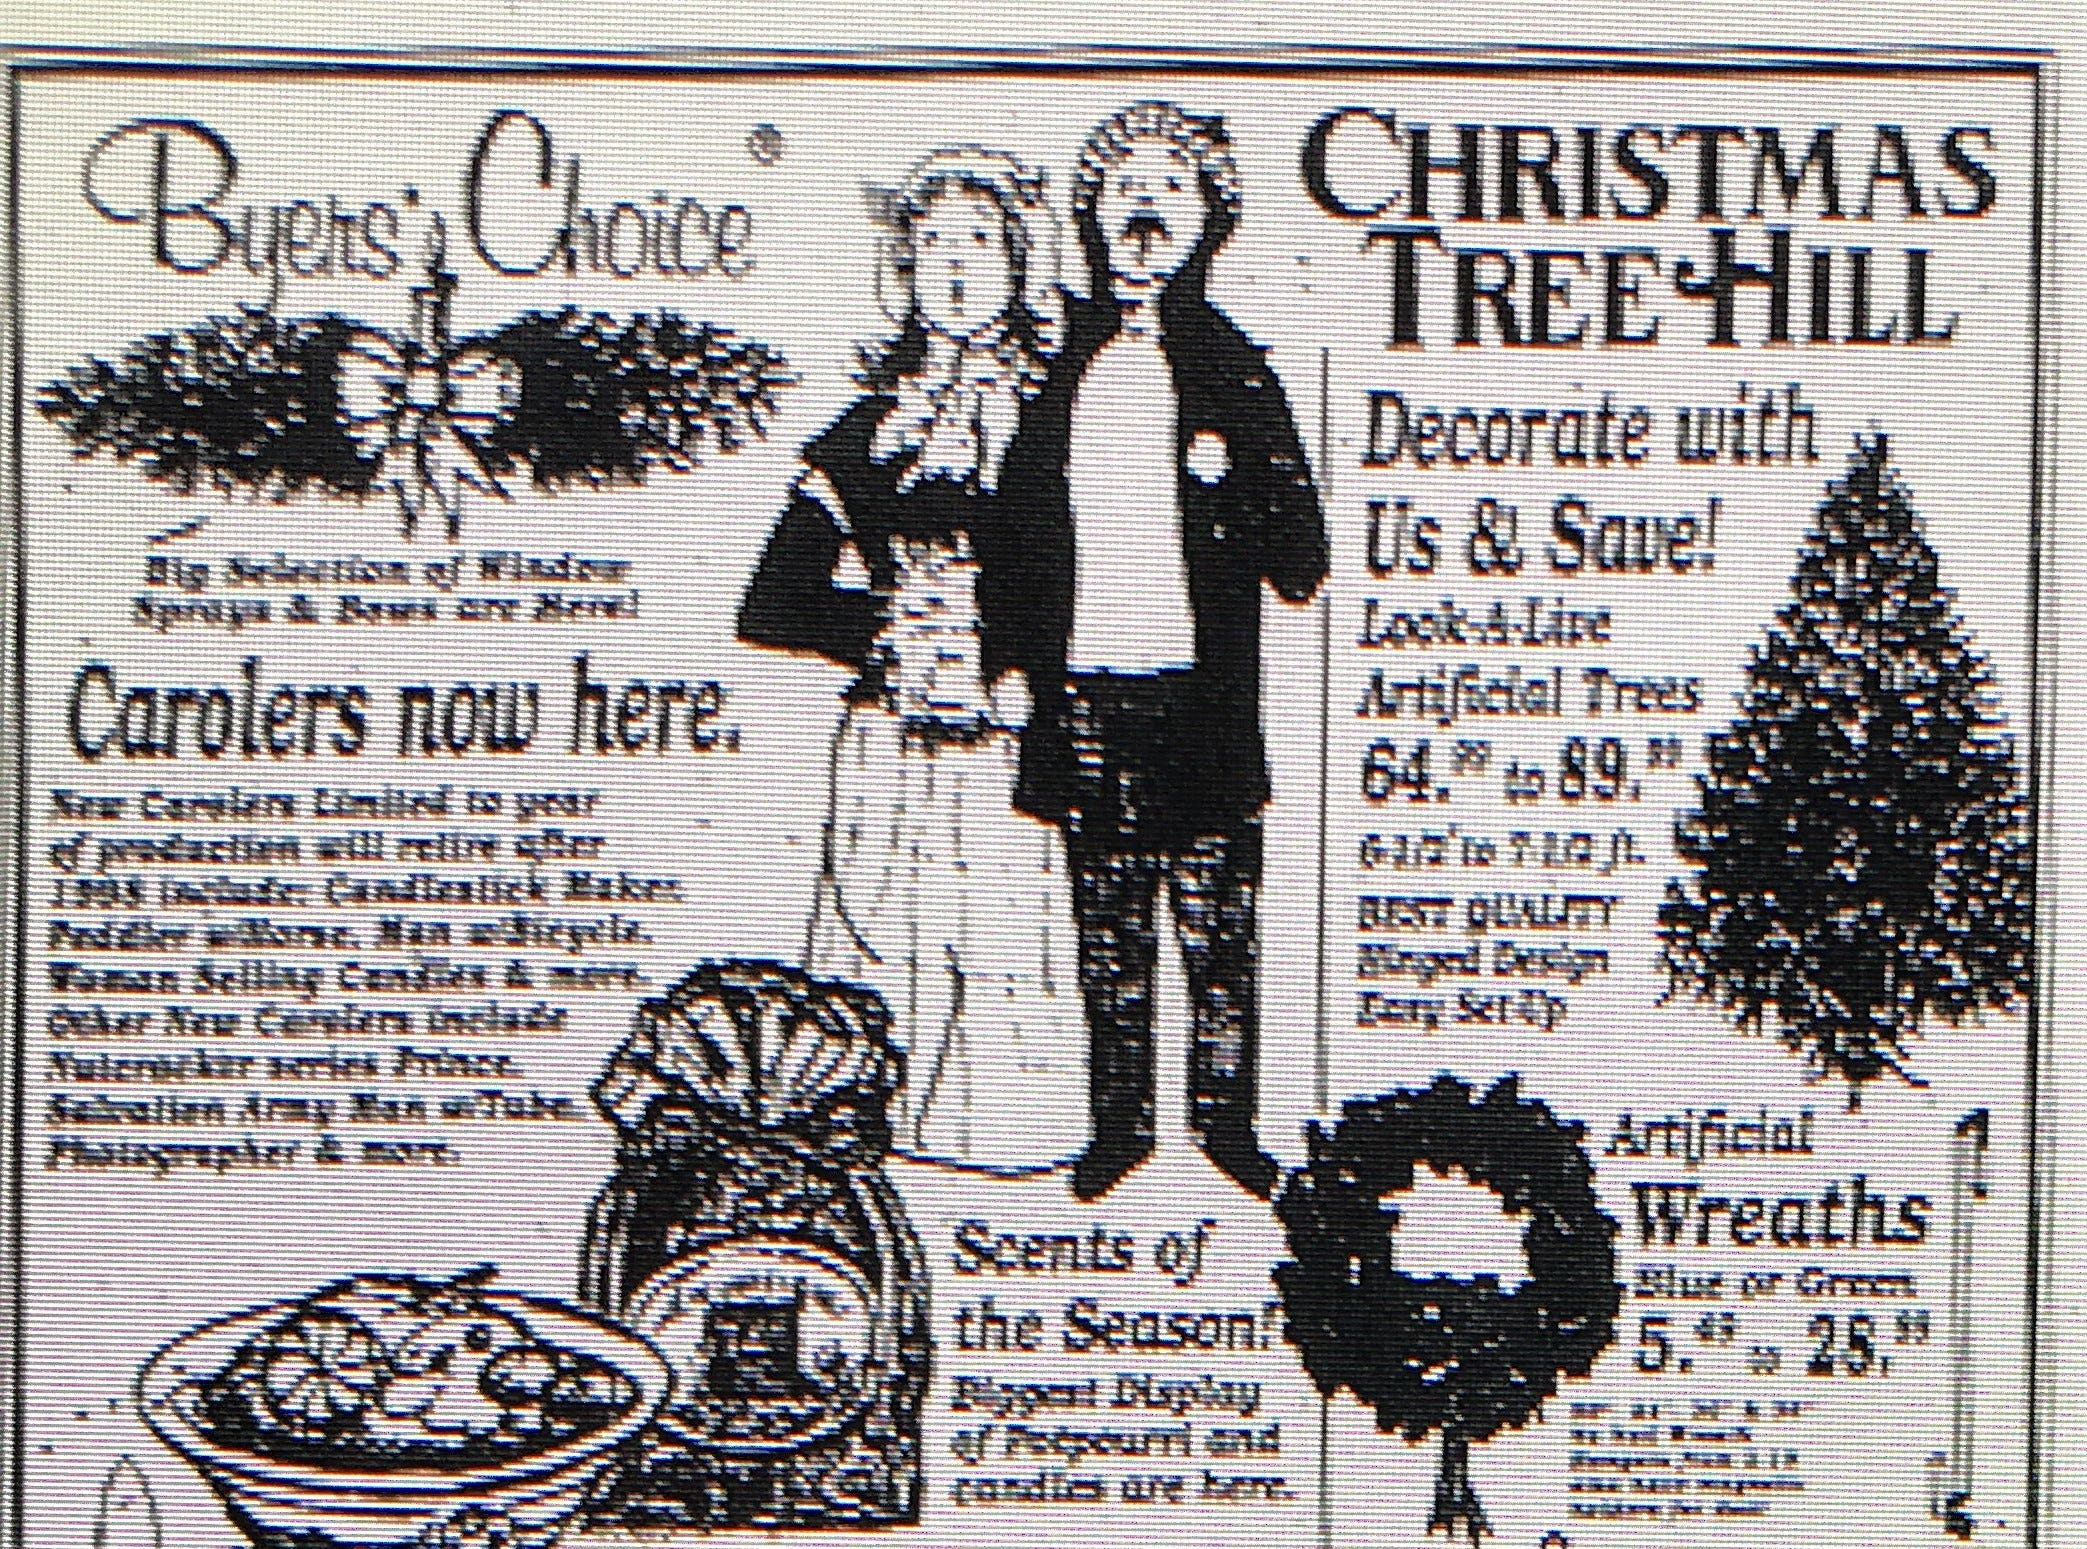 A holiday advertisement for Byers' Choice circa 1978.